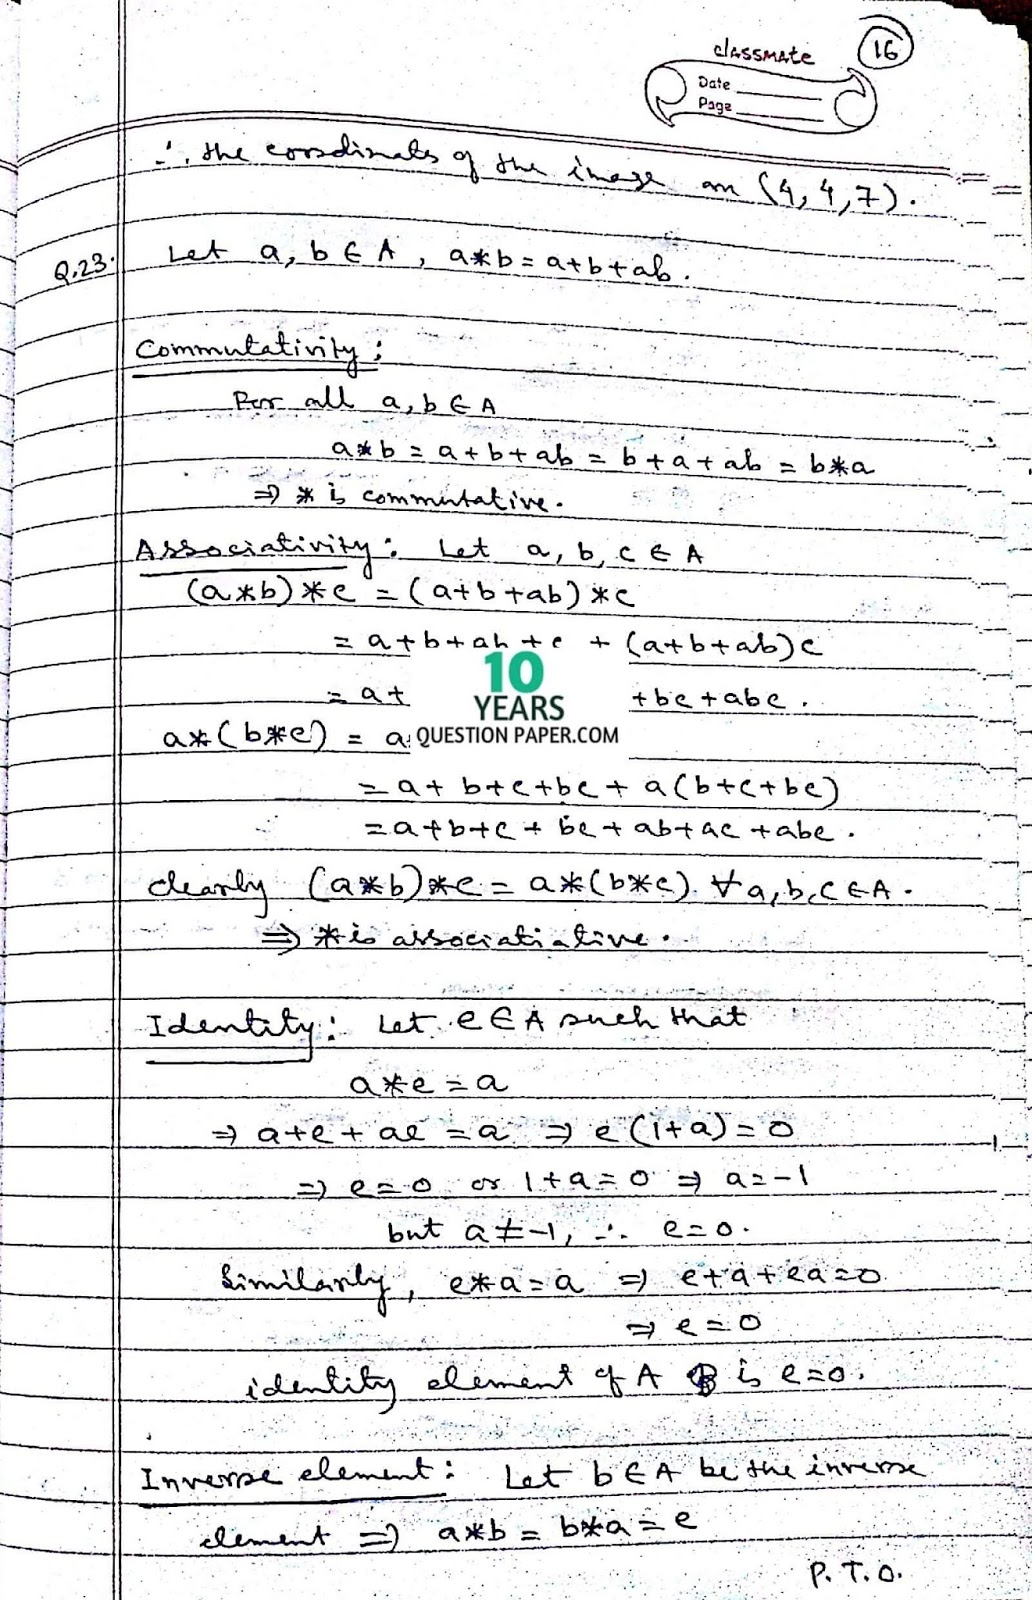 cbse class 10 mathematics solved question Click on links below for class 10 mathematics to download solved sample papers, past year question papers with solutions, pdf worksheets, ncert books and solutions for mathematics class 10 based on syllabus and guidelines issued by cbse and ncert.